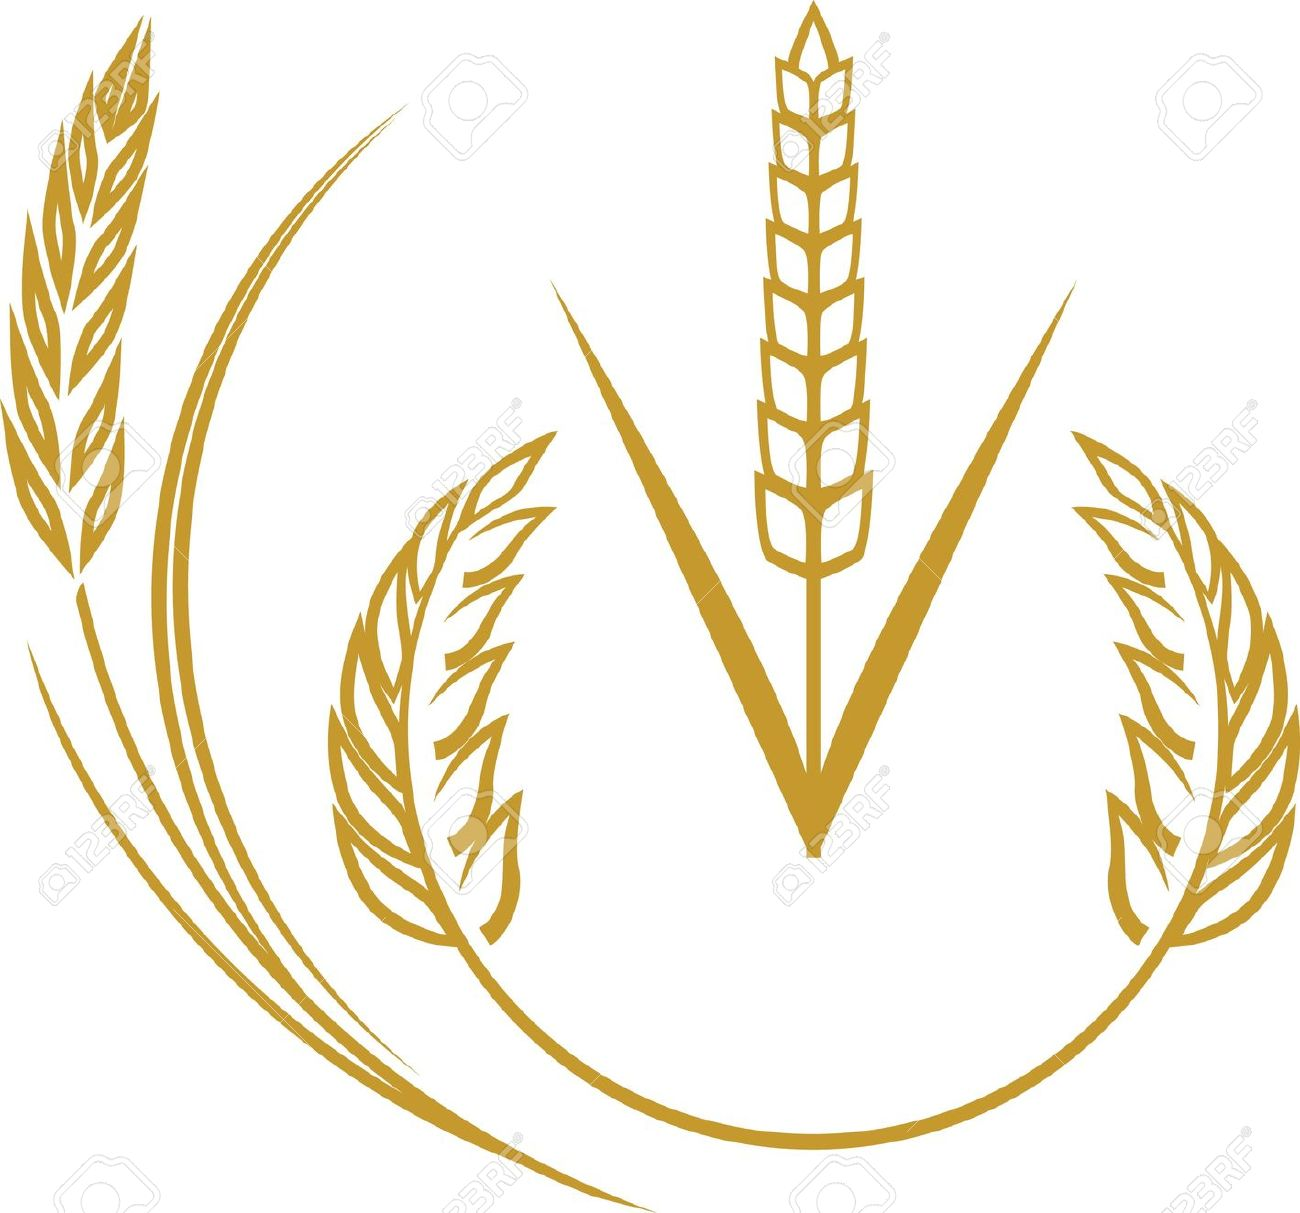 Wheat Icons Royalty Free Cliparts, Vectors, And Stock Illustration.